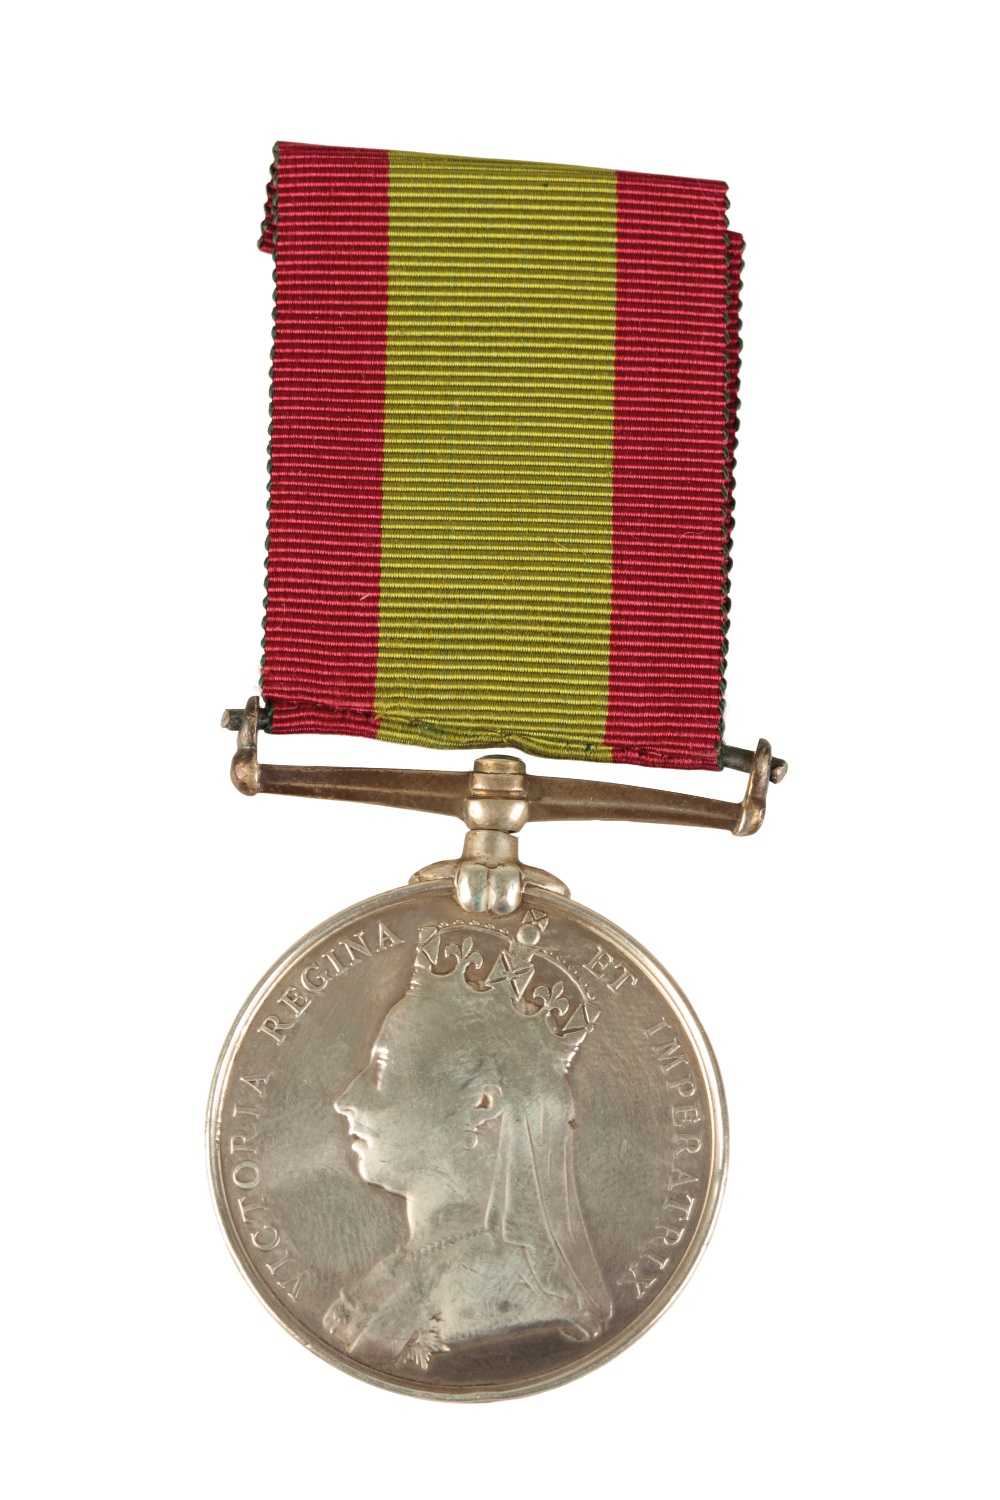 Lot 45a - AFGHANISTAN MEDAL TO LANCE CORPORAL JAKES 1/17TH REGT